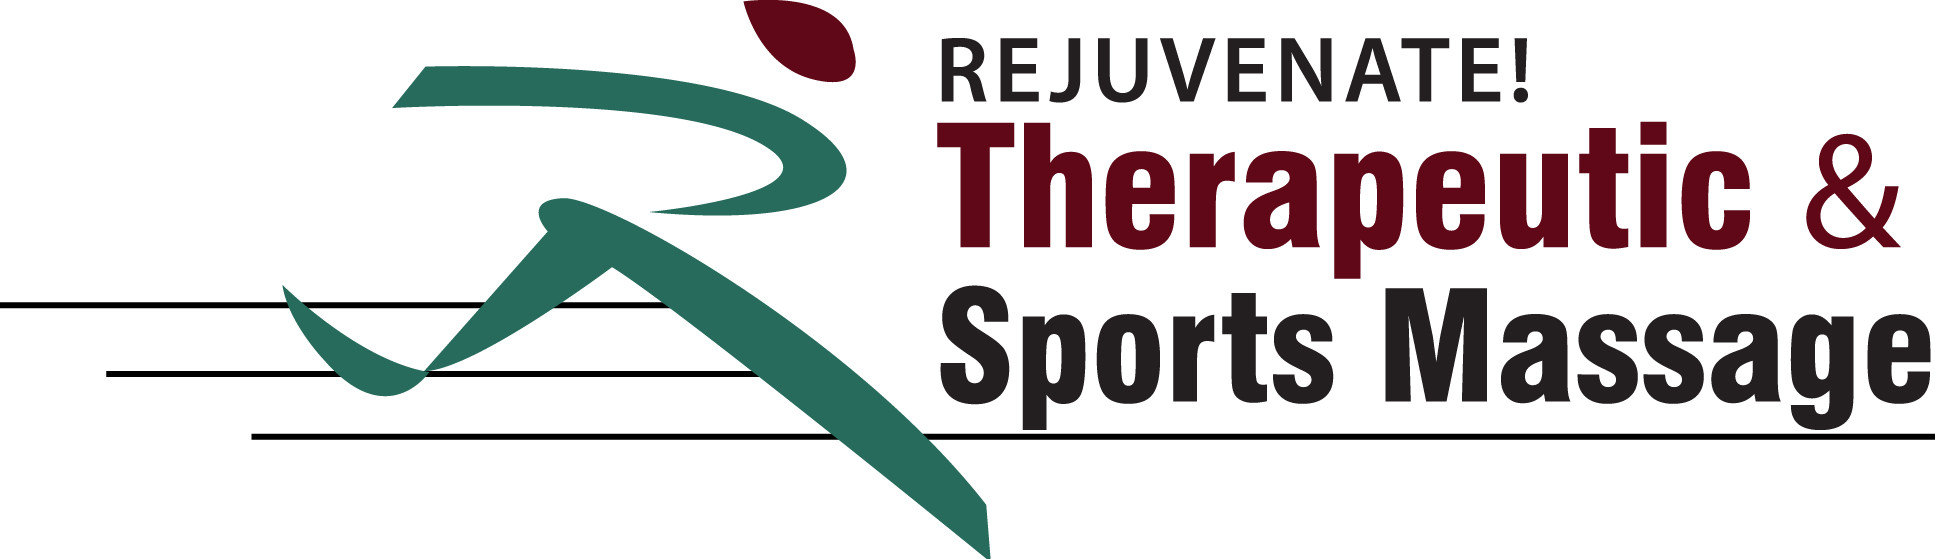 REJUVENATE! Therapeutic & Sports Massage